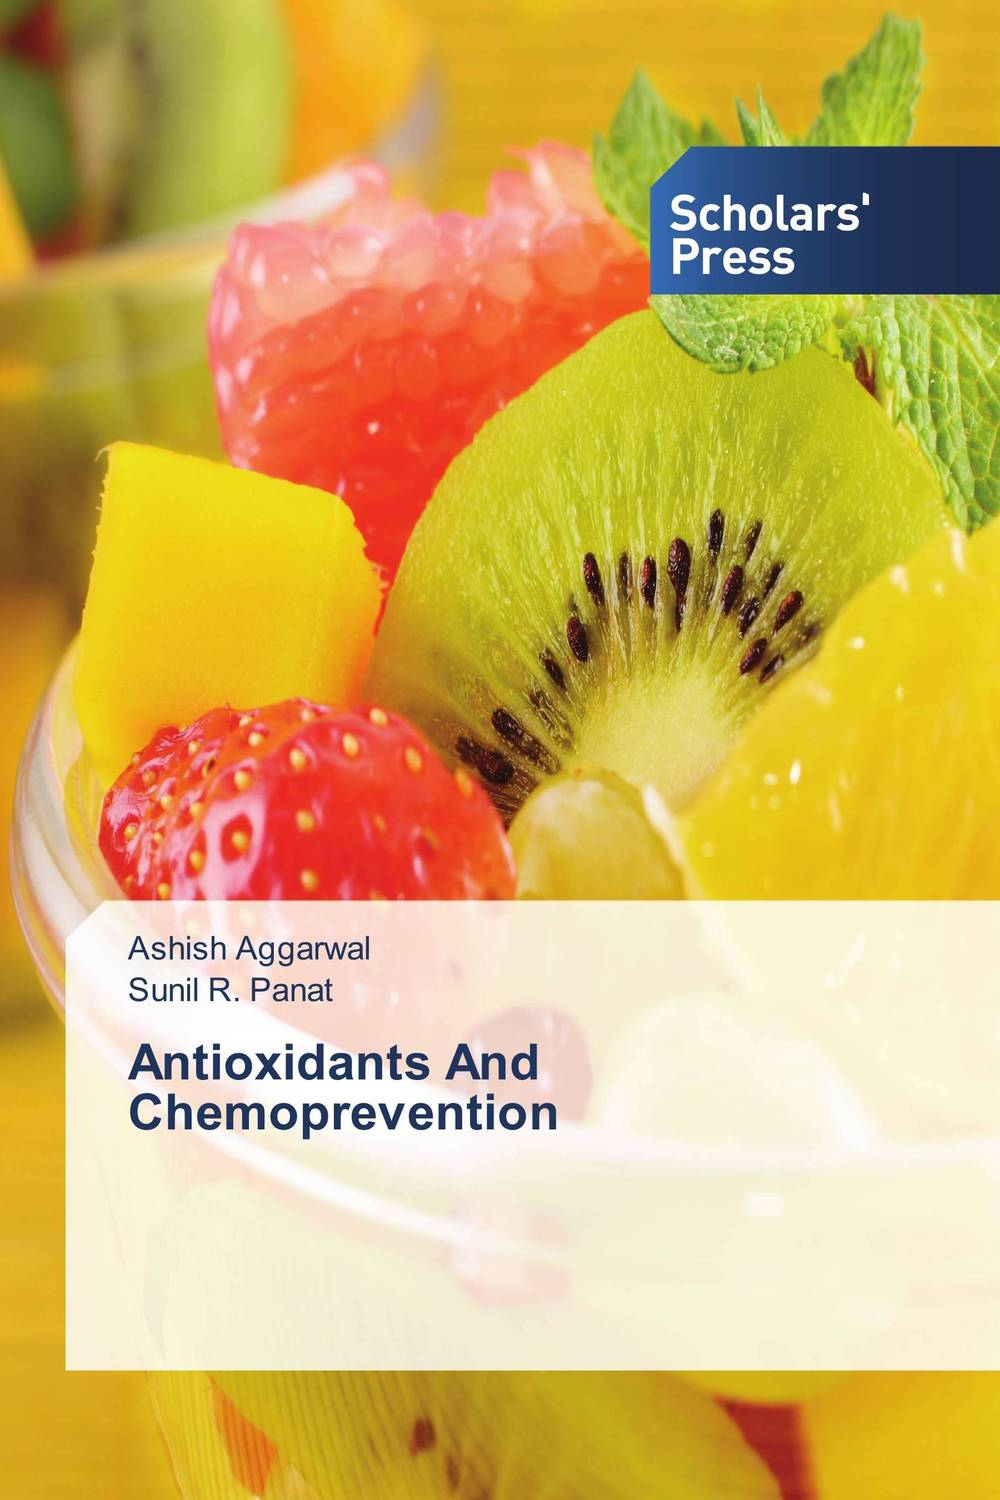 Antioxidants And Chemoprevention oxidative stability of meat products and the role of antioxidants